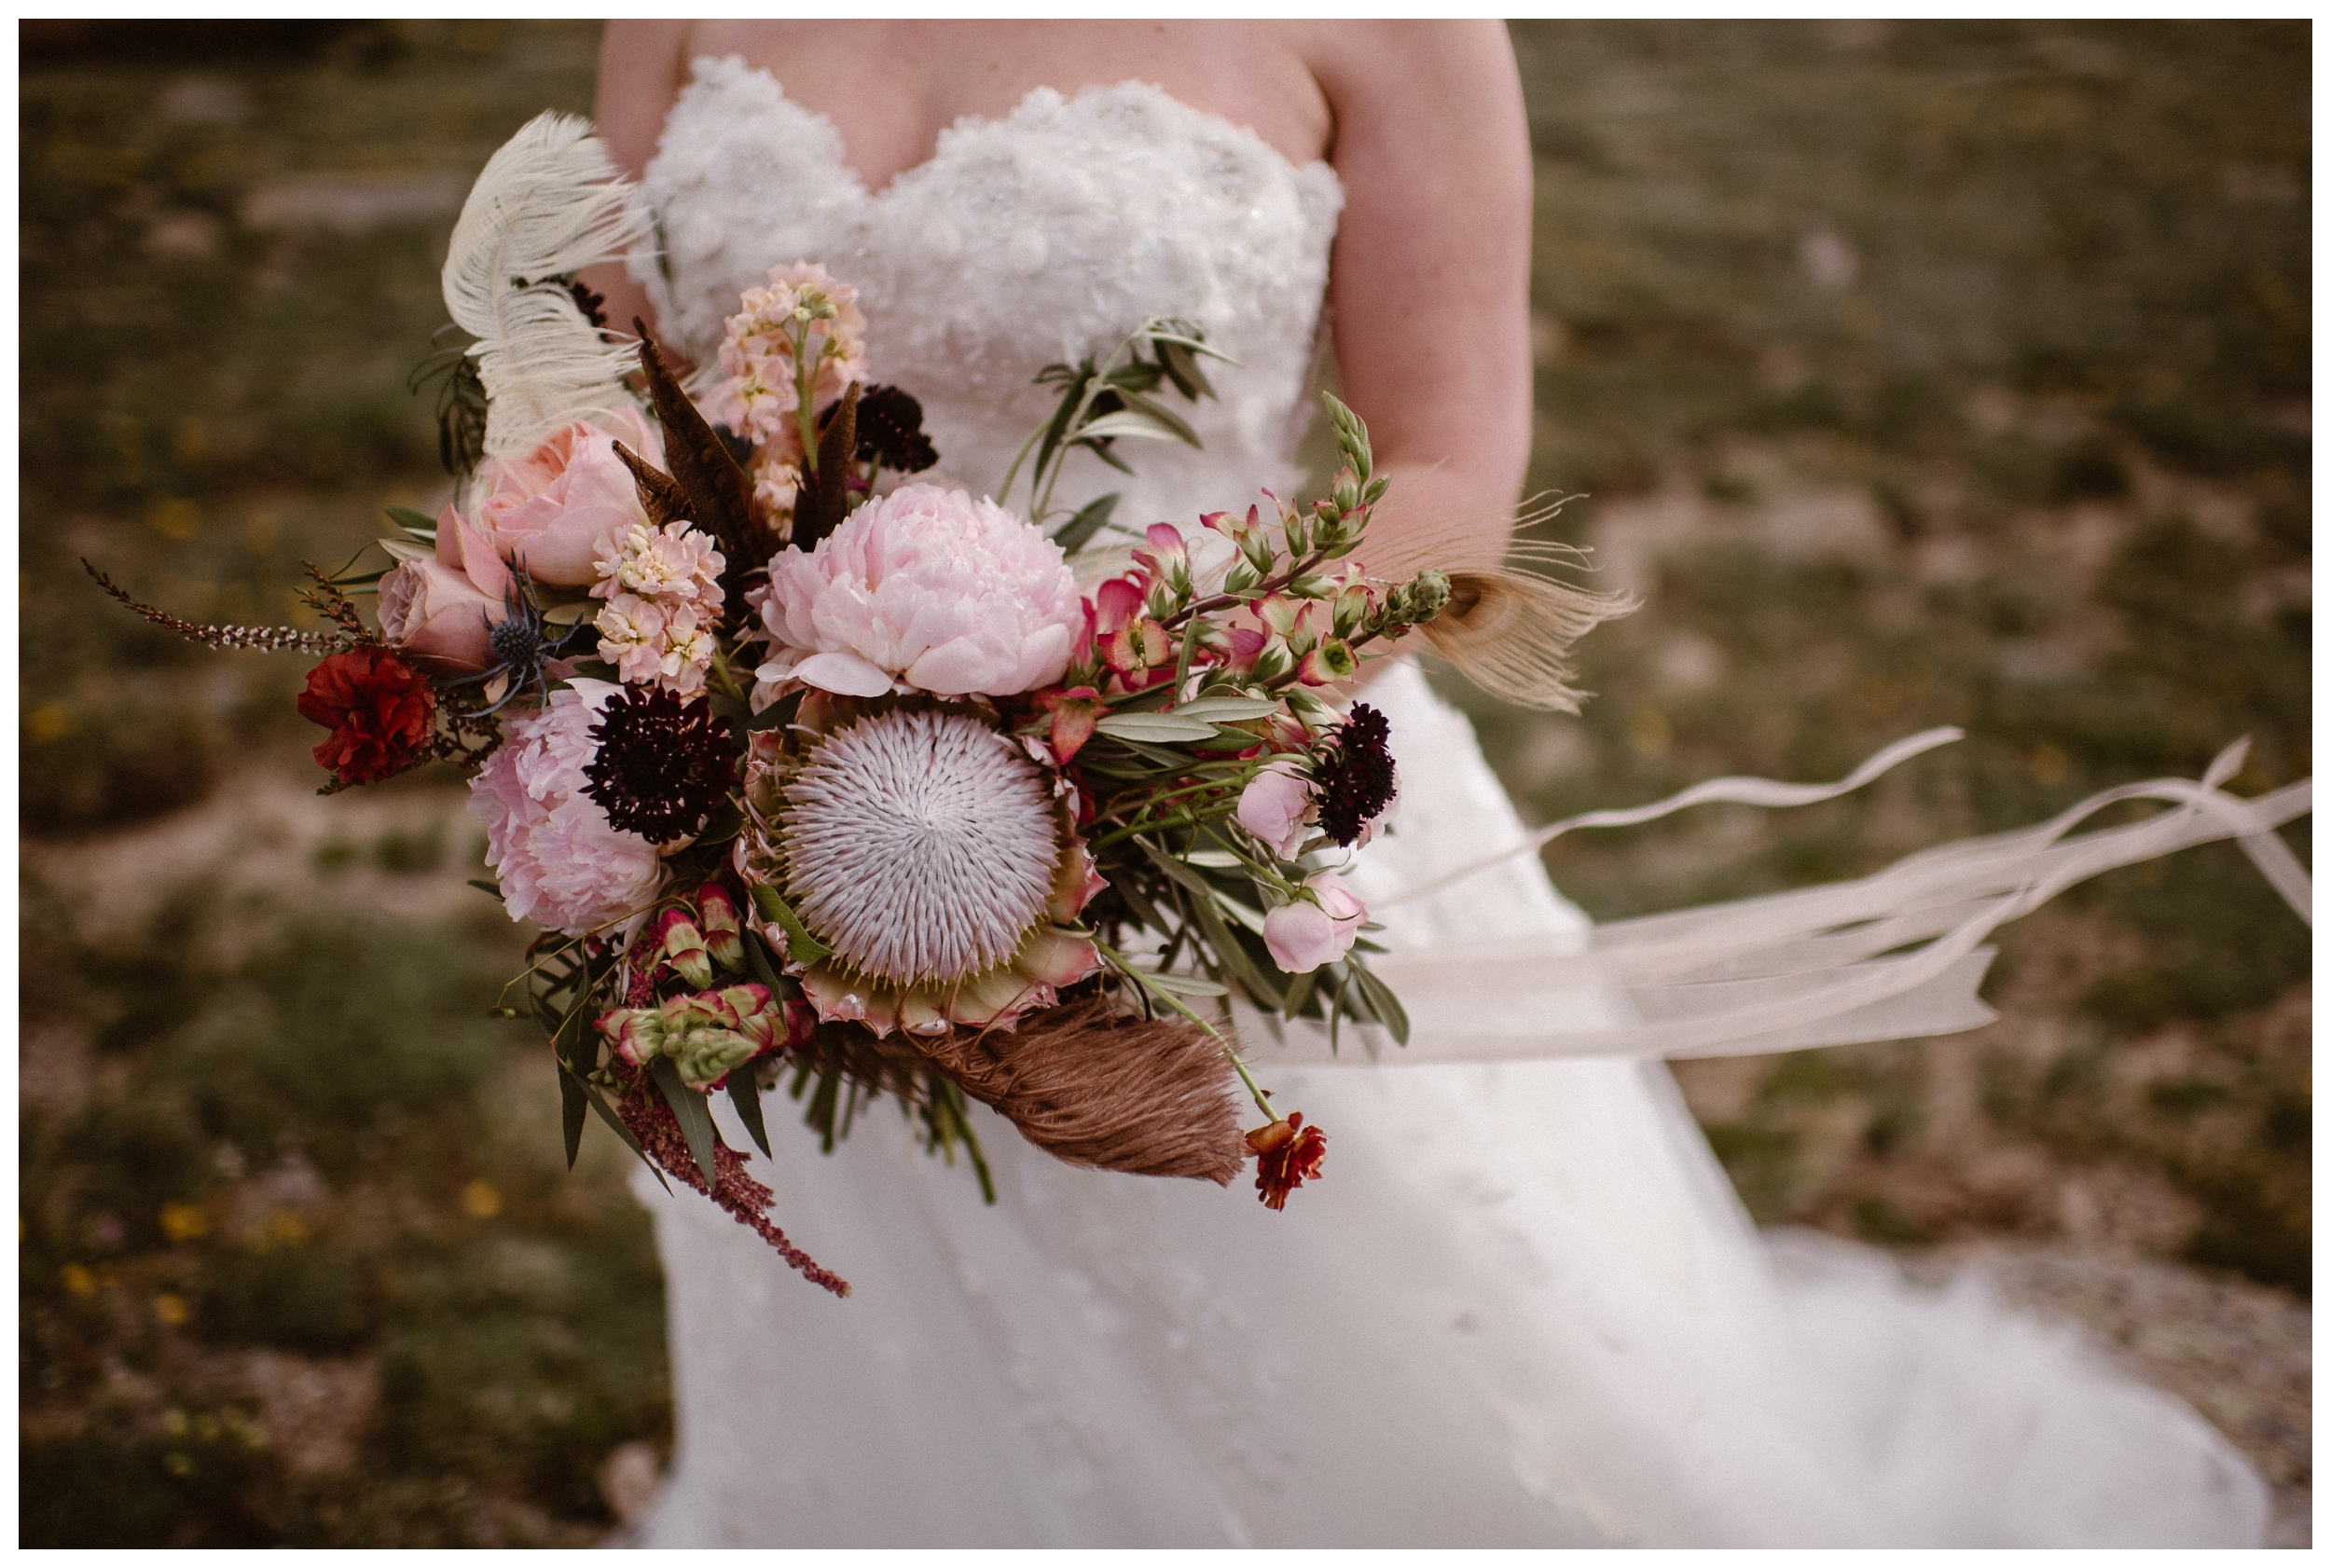 Bridal bouquet for an intimate elopement ceremony at Rocky Mountain National Park. Photo by Adventure Instead, Maddie Mae.